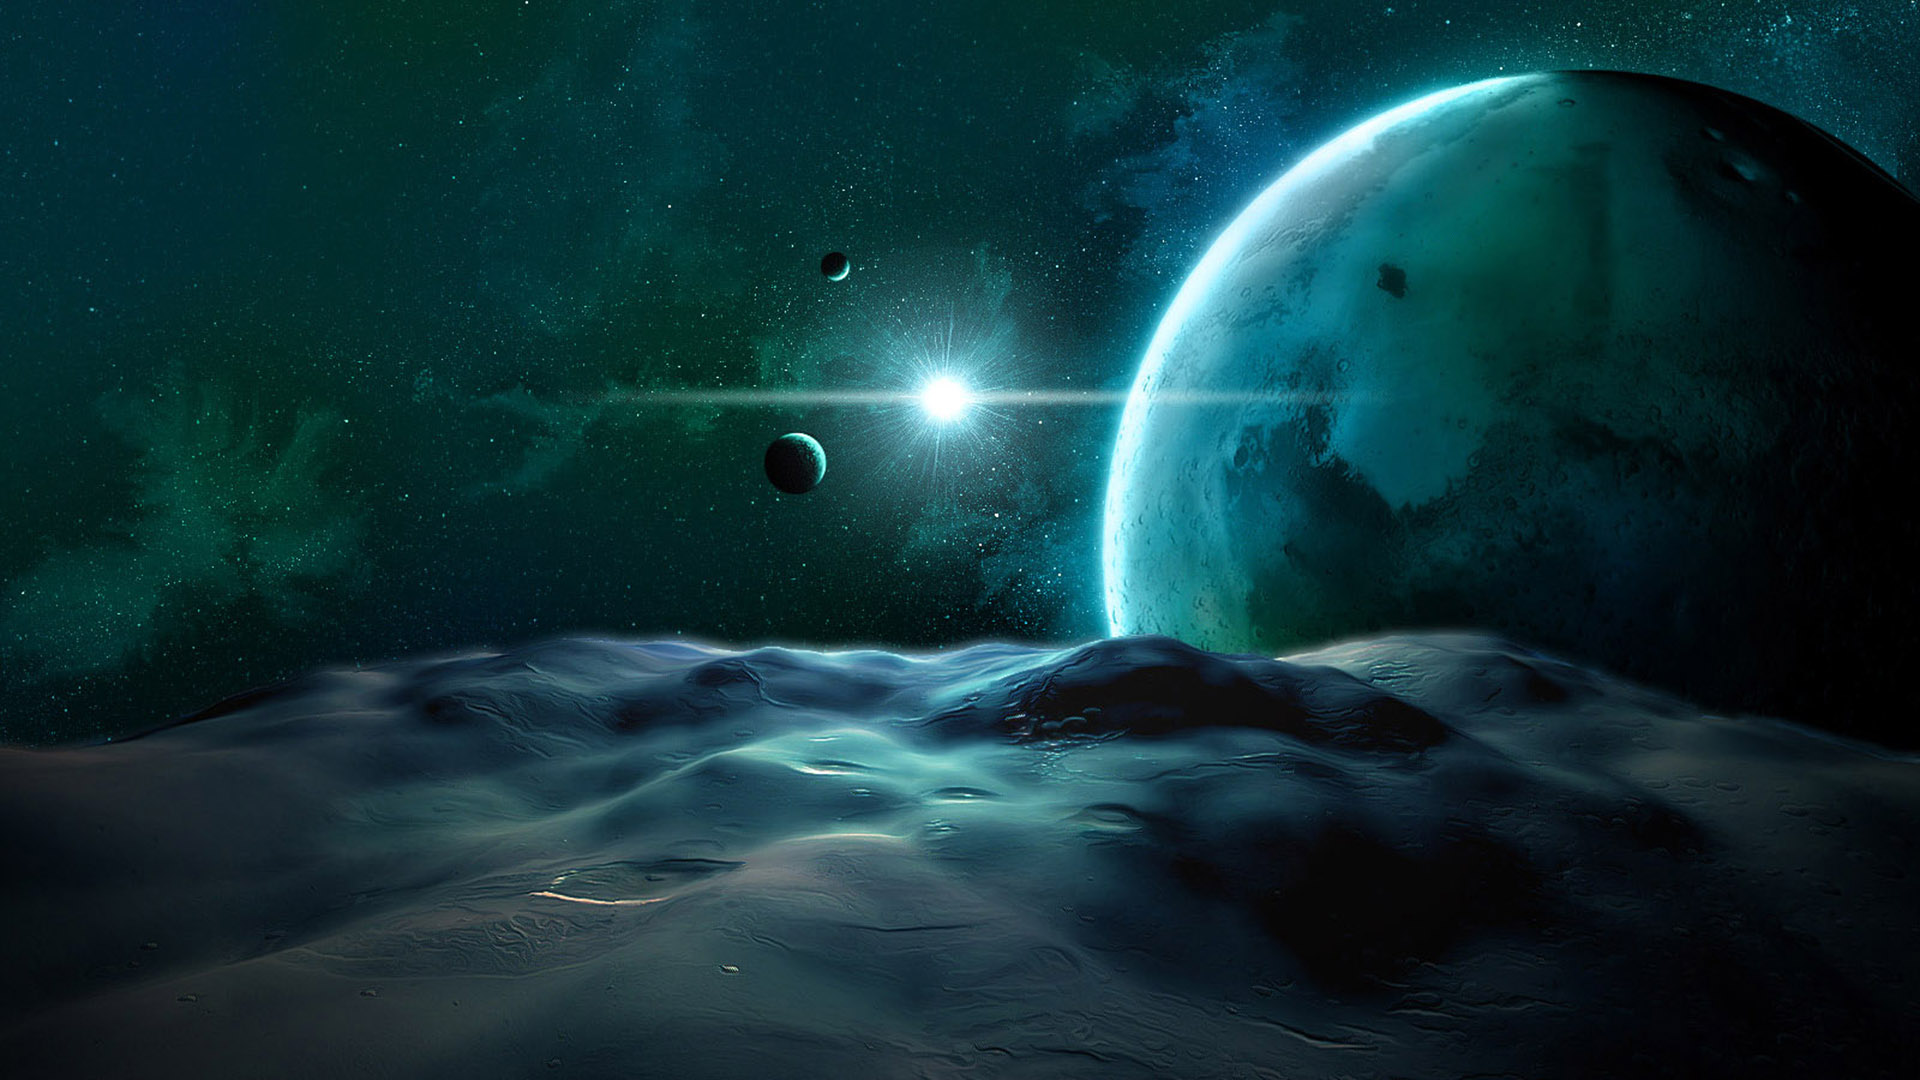 space art wallpaper 1920x1080 1920x1080 Space art Universe 1920x1080